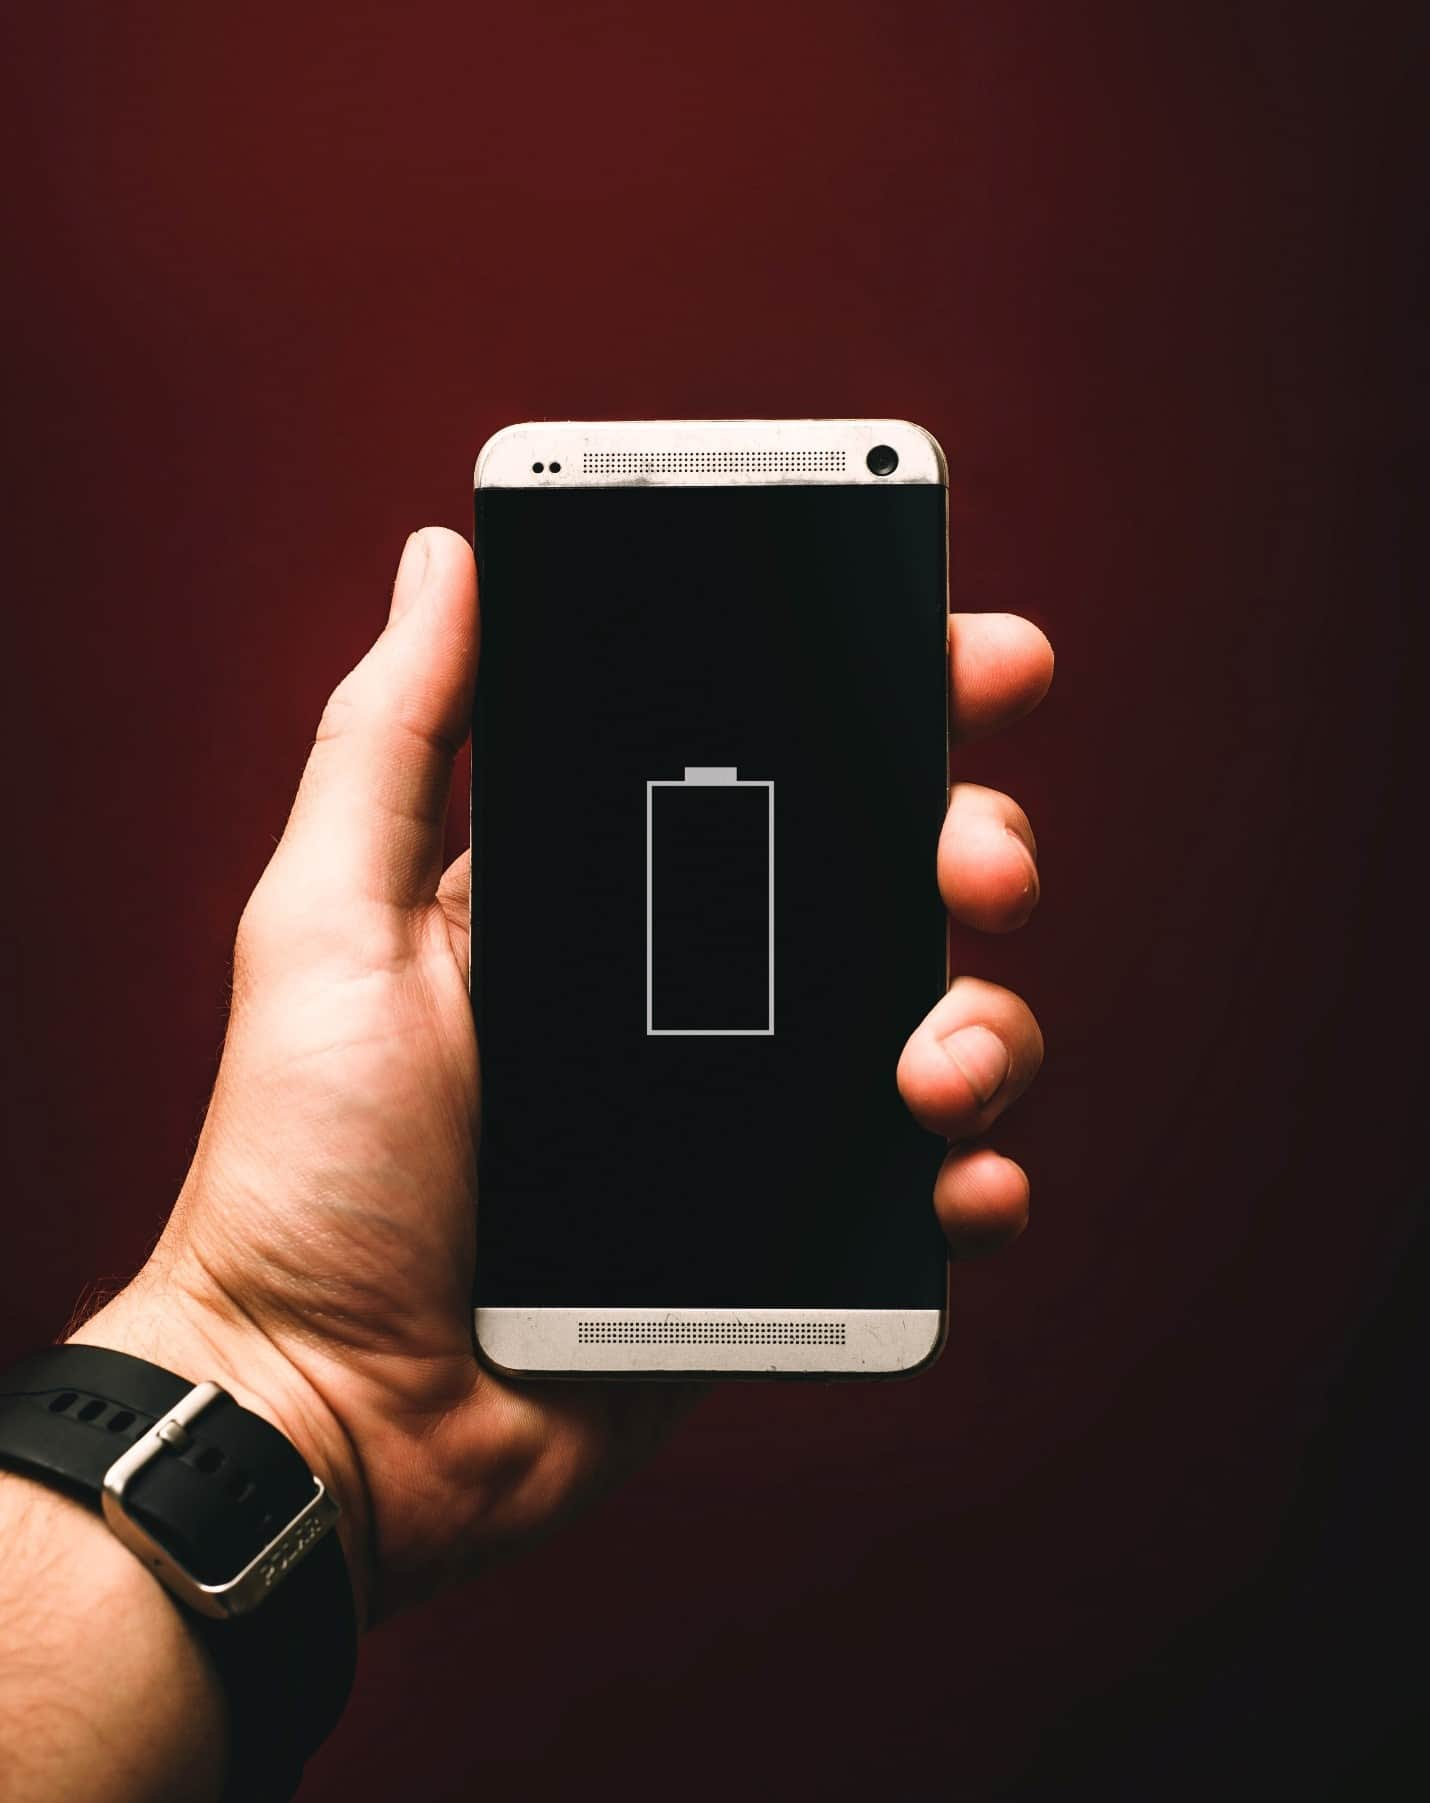 content/en-gb/images/repository/isc/2020/9910/prolong-your-smartphone-battery-lifespan-1.jpg